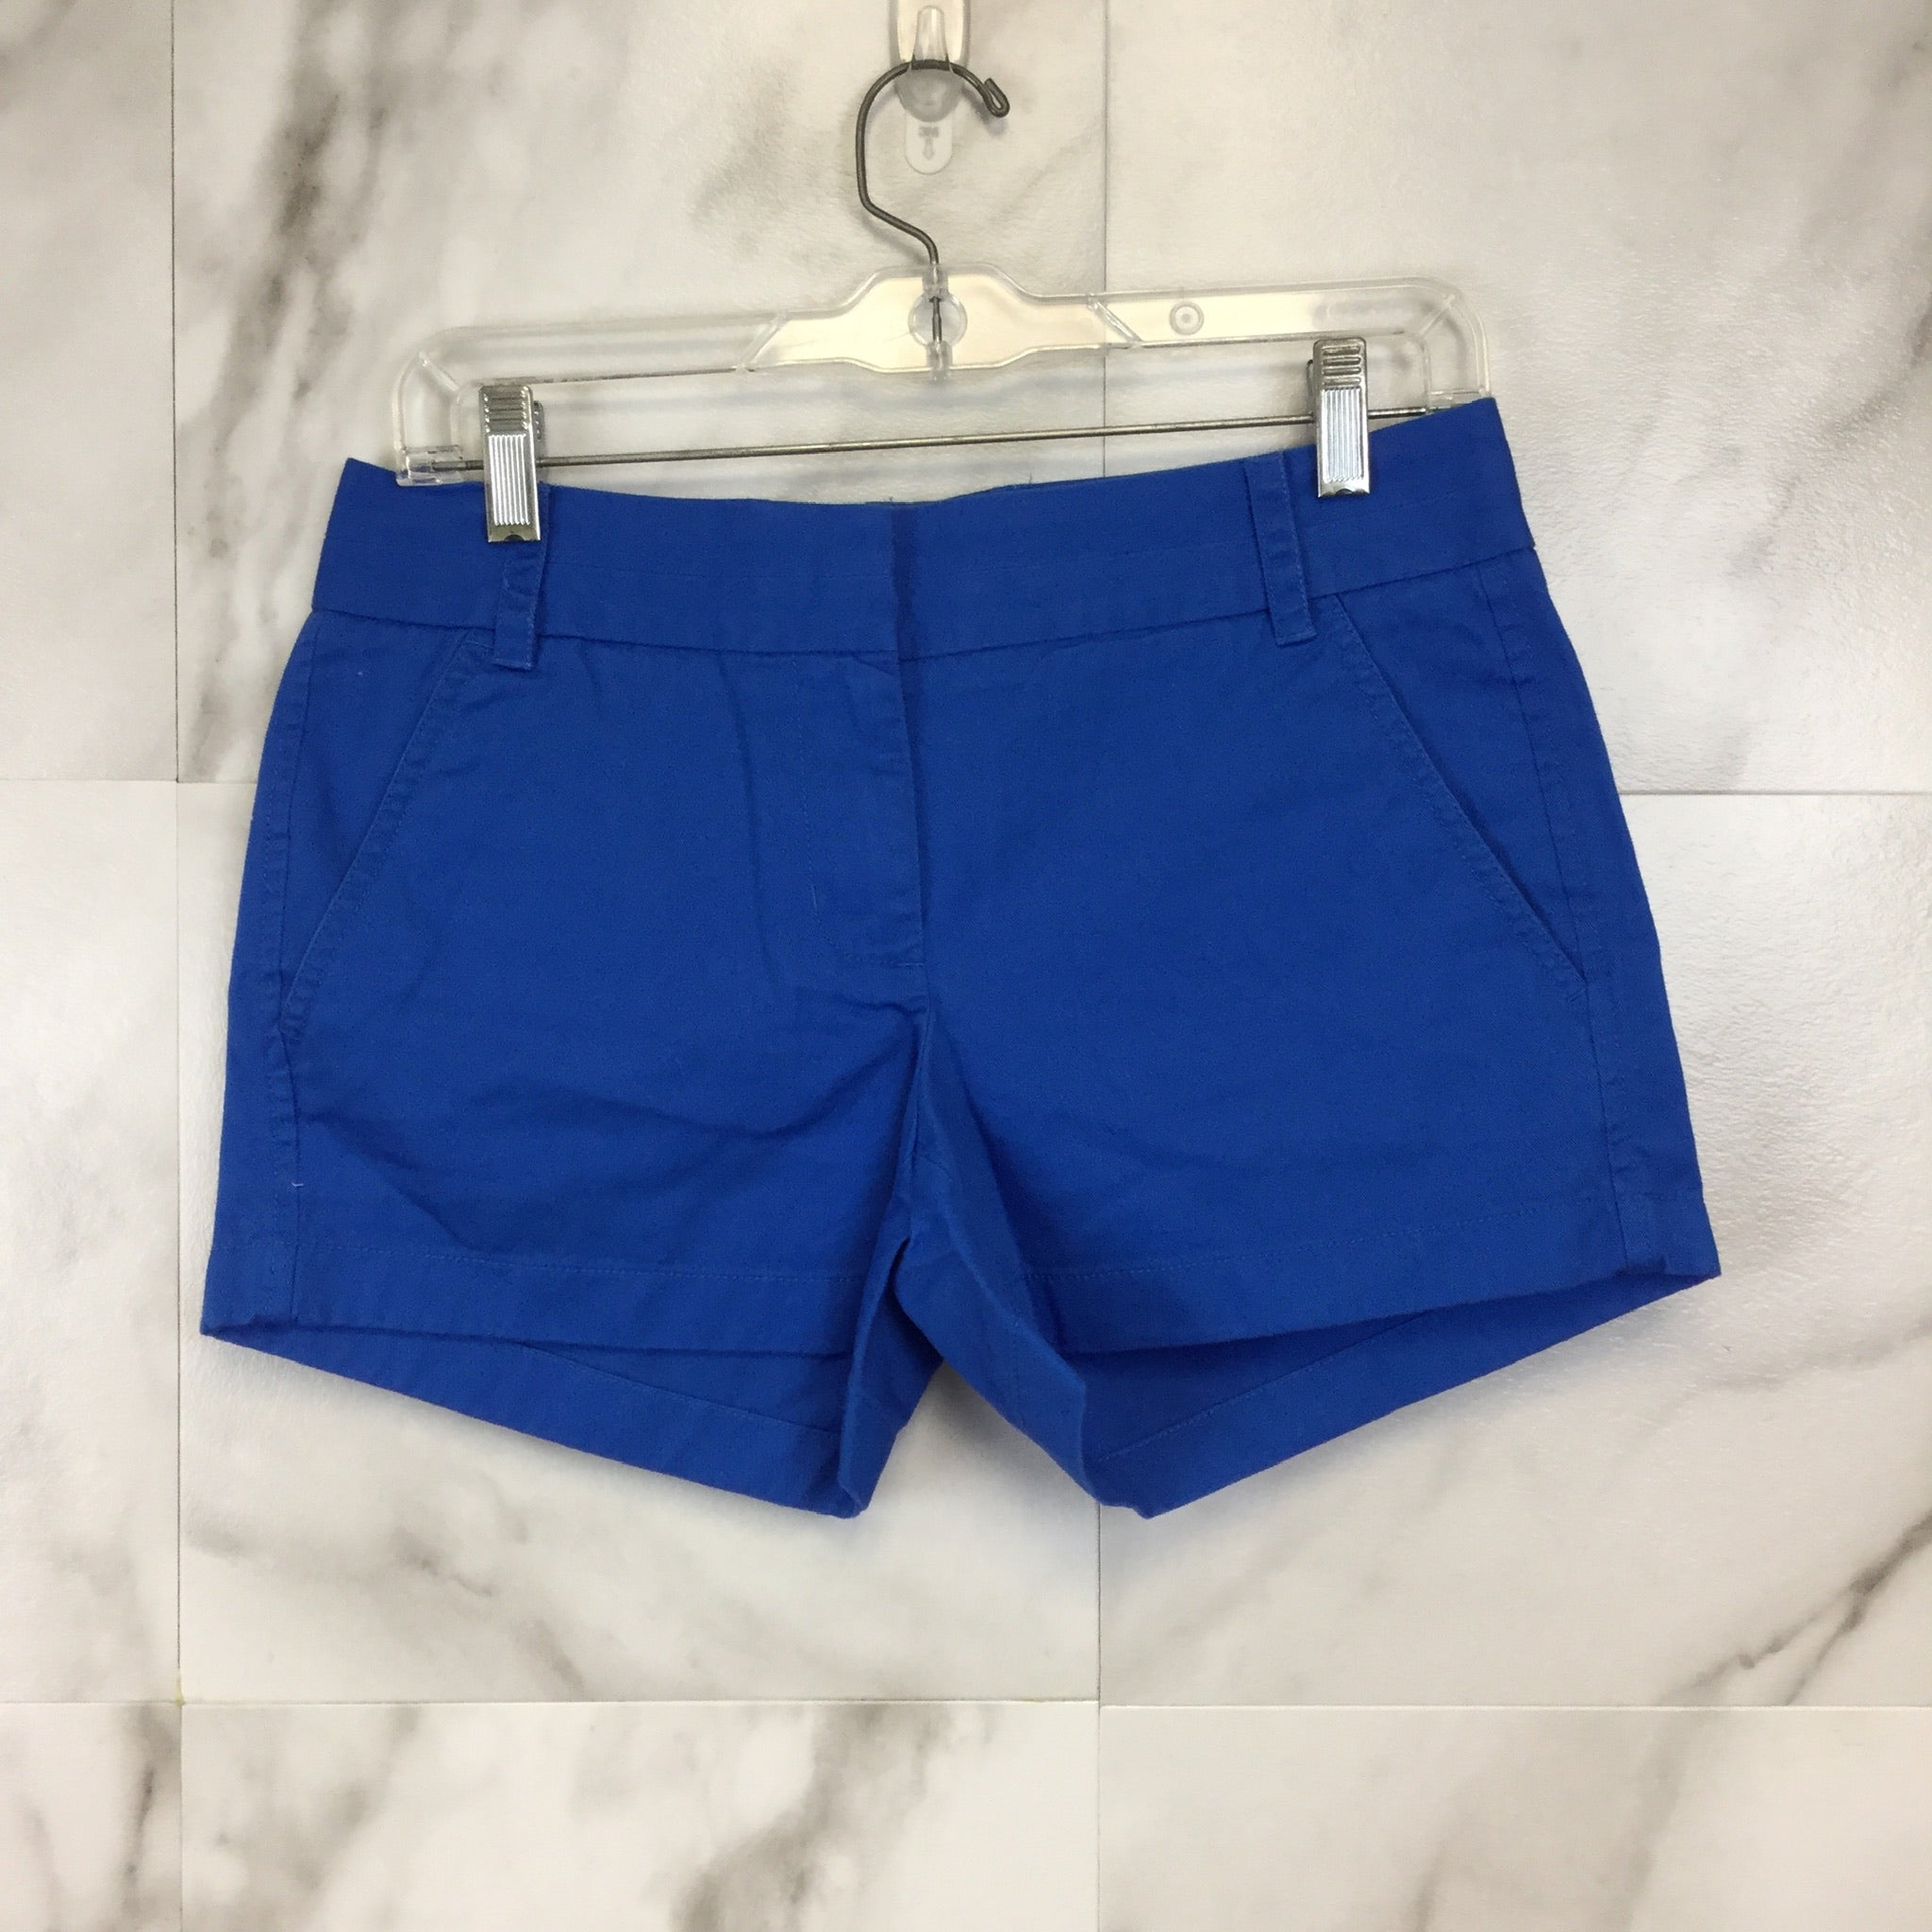 New! J. Crew Chino Shorts - Size 0